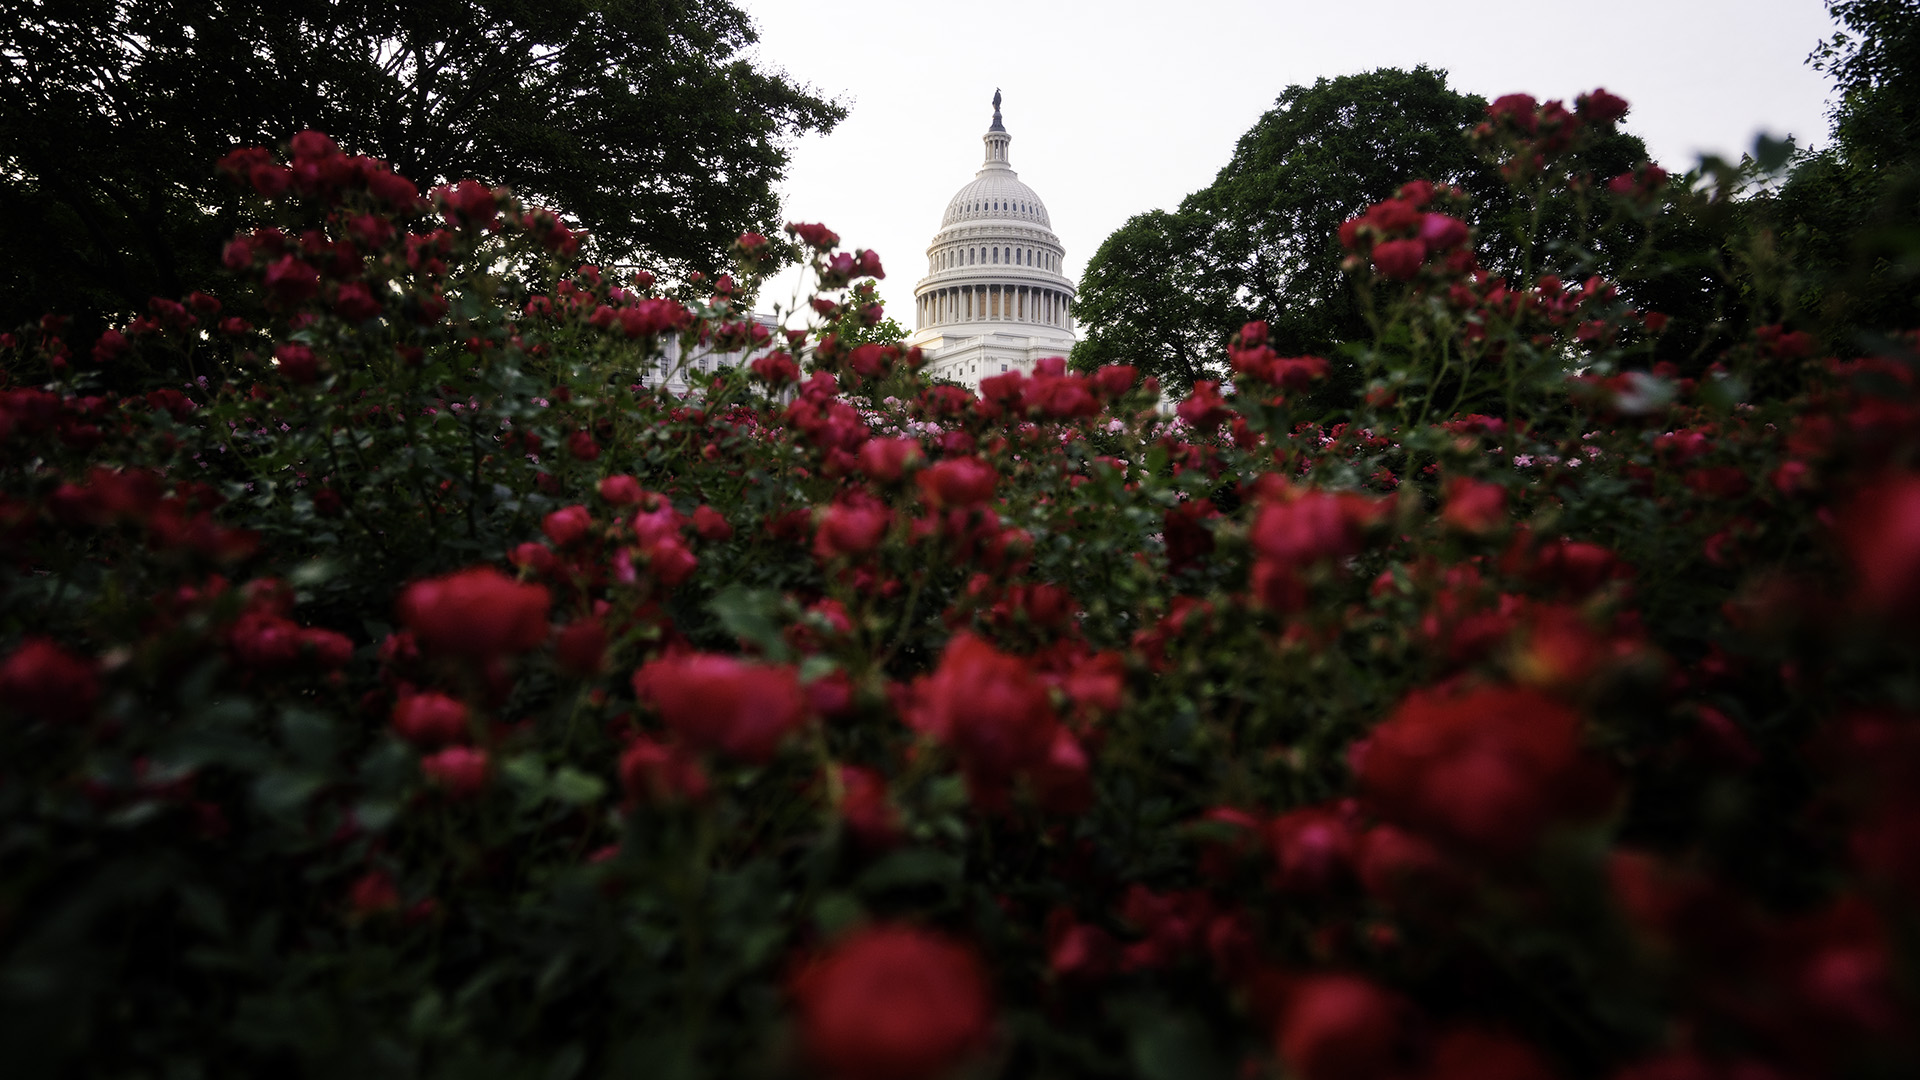 US_Capitol_Flowers_Zoom_Background_Angela B Pan